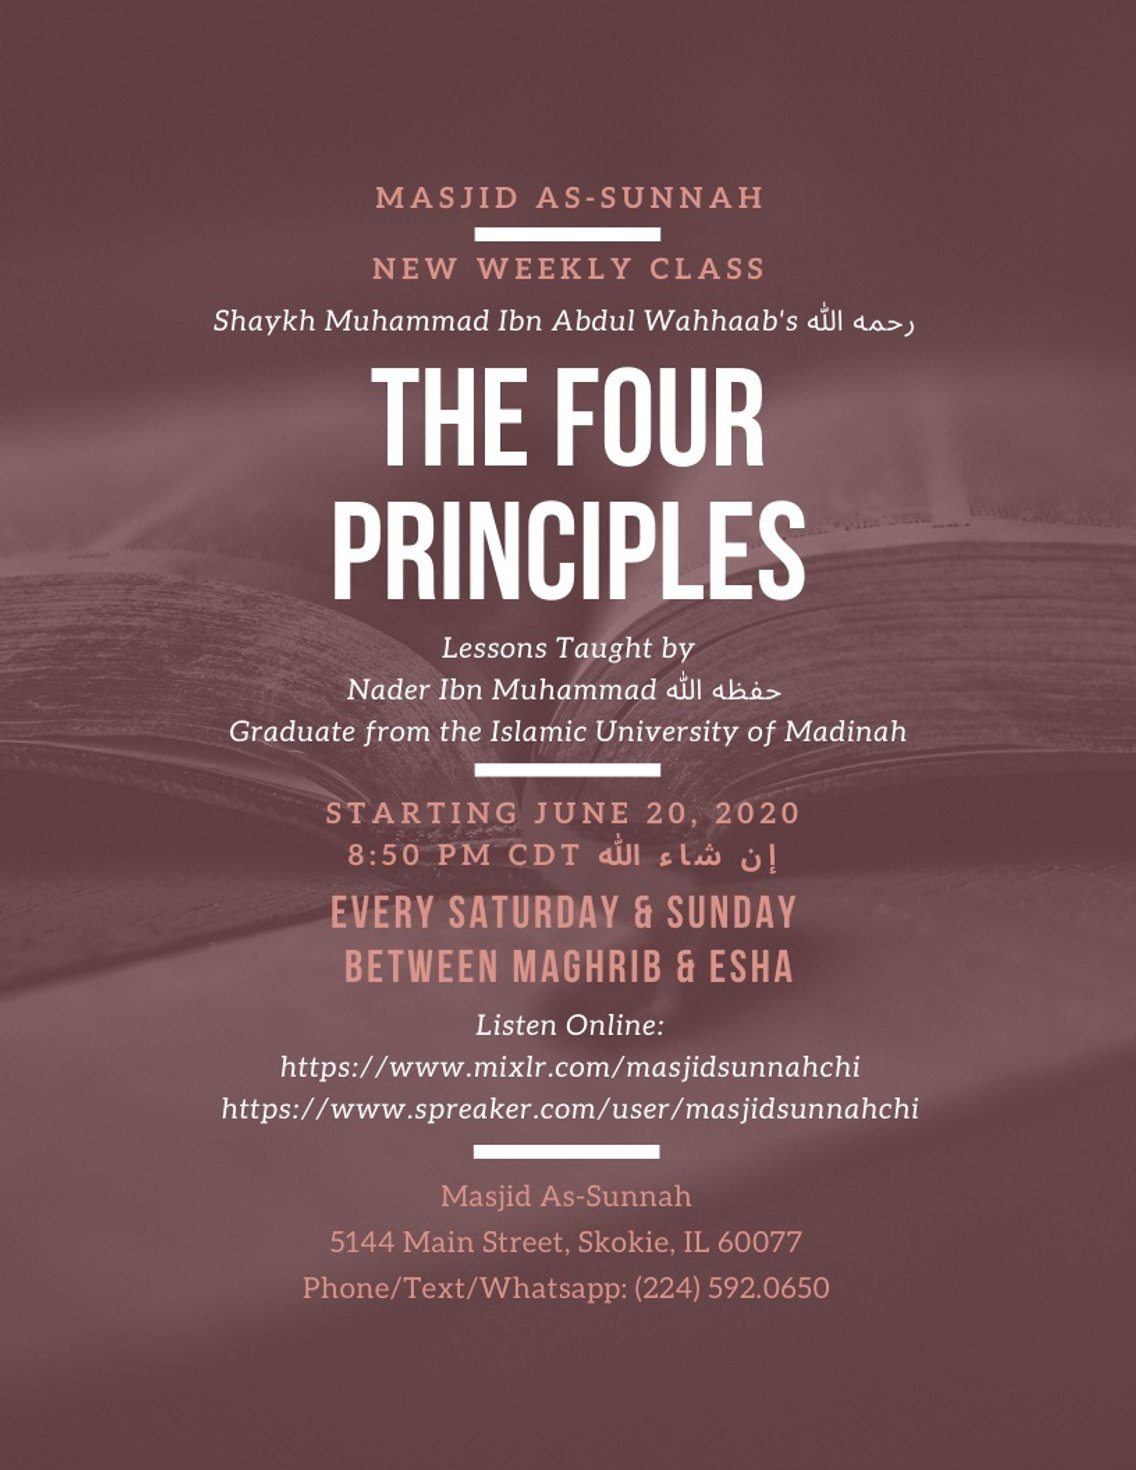 The Four Principles - Cover Image